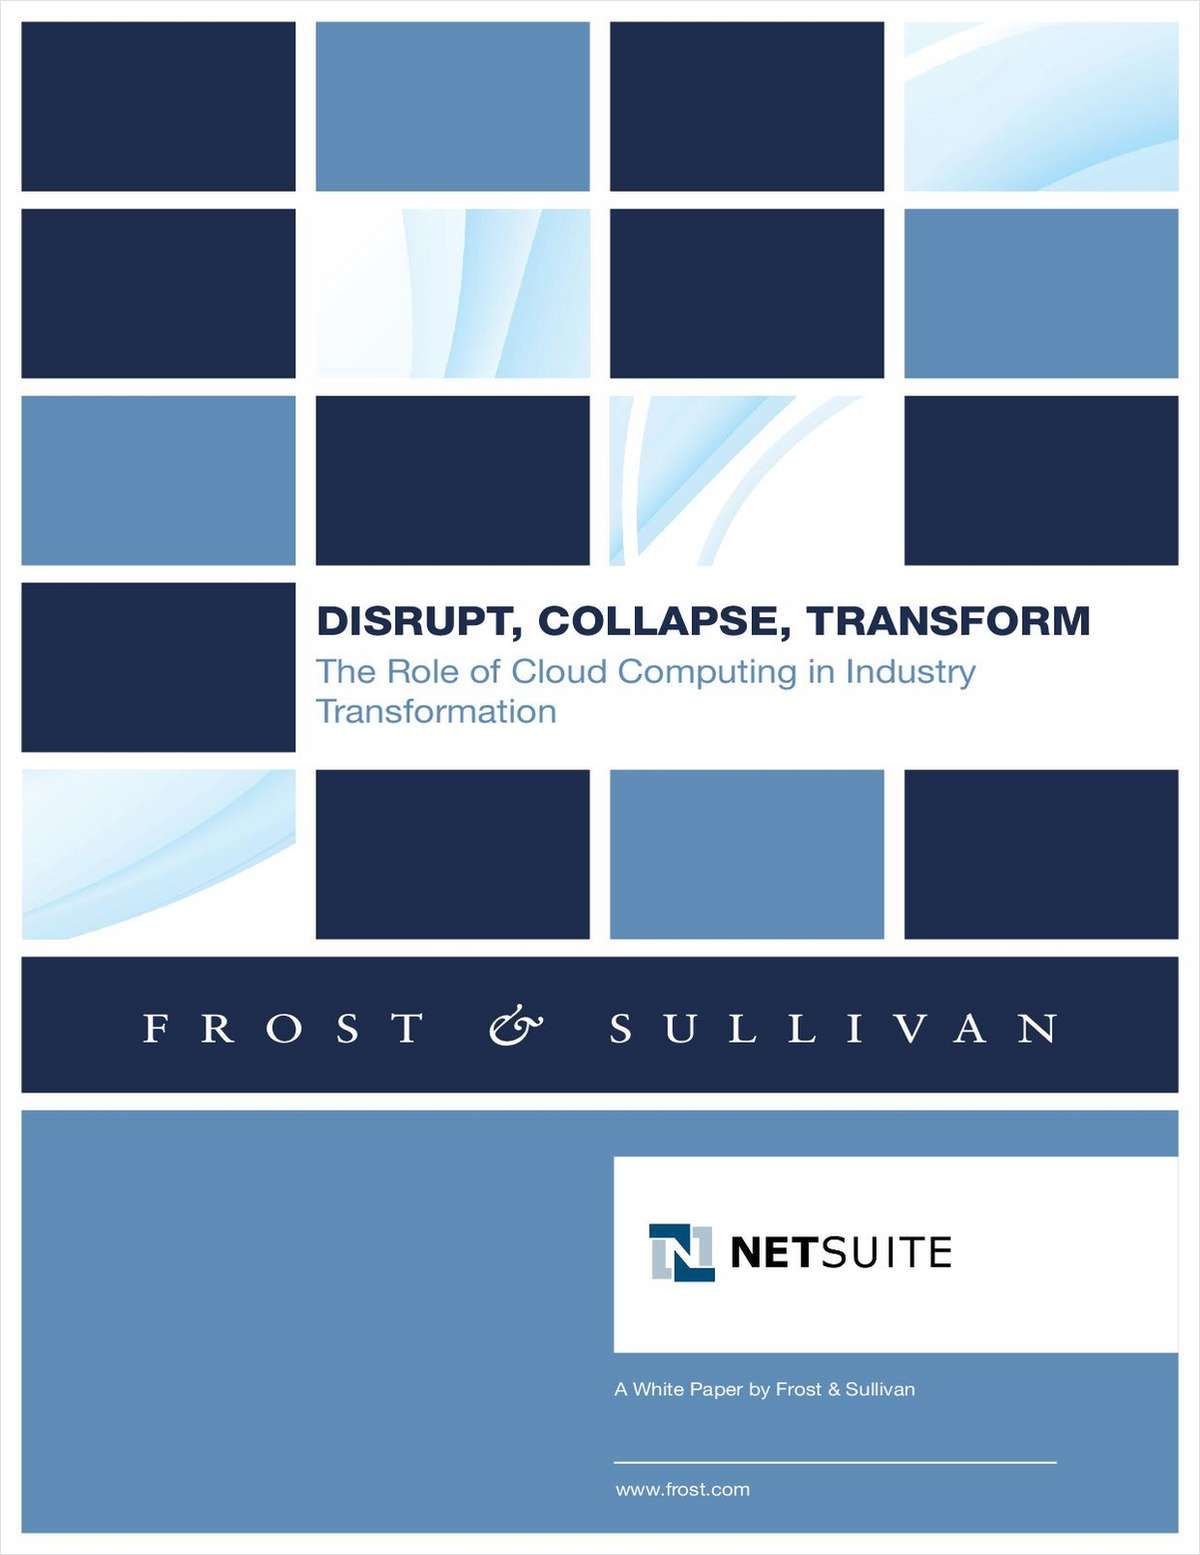 Frost & Sullivan: Disrupt, Collapse, Transform